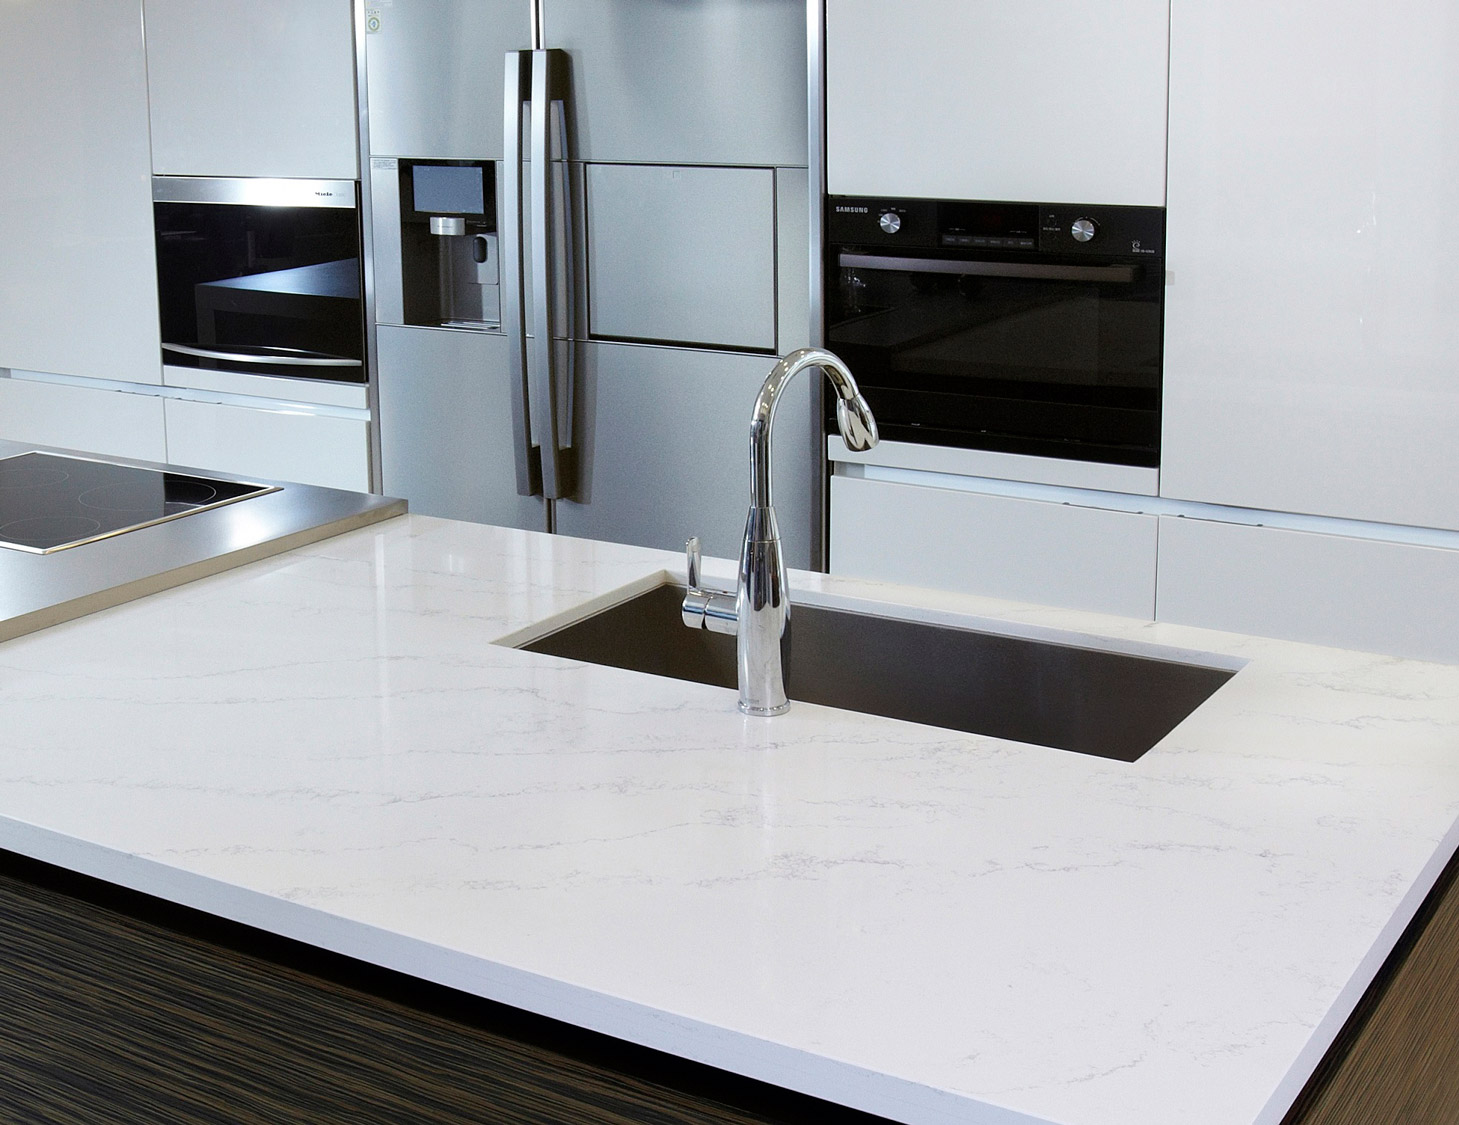 HanStone Quartz Countertops - GLACIER COLLECTION - Tranquility